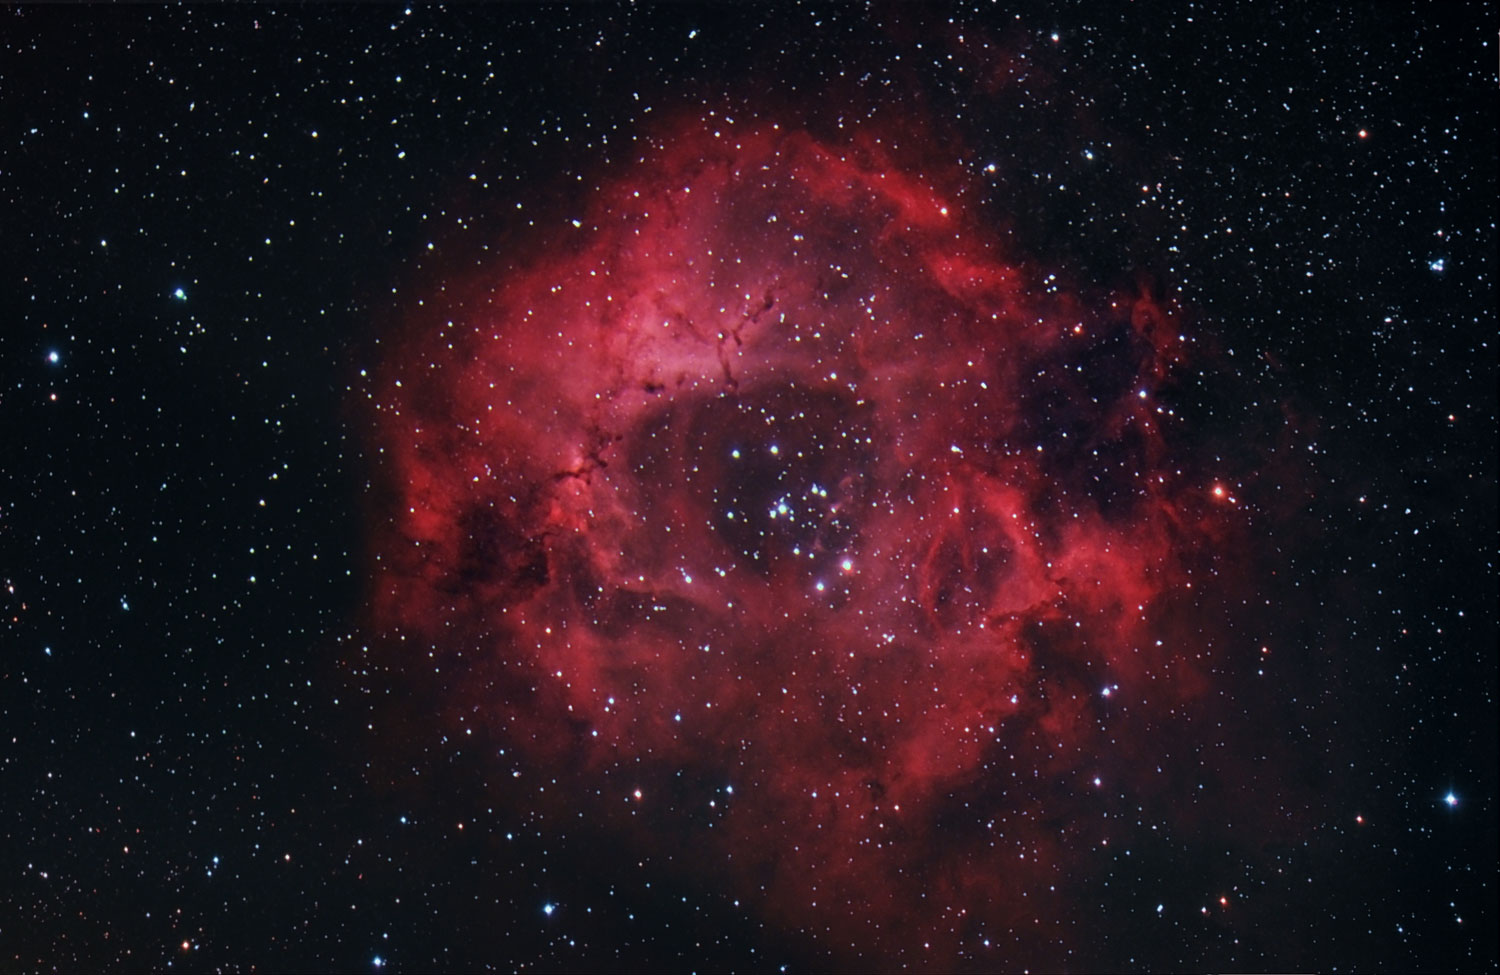 The Rosette nebula, also known as NGC 2237 or Caldwell 49, taken from Seneca, Ill., in March 2014.